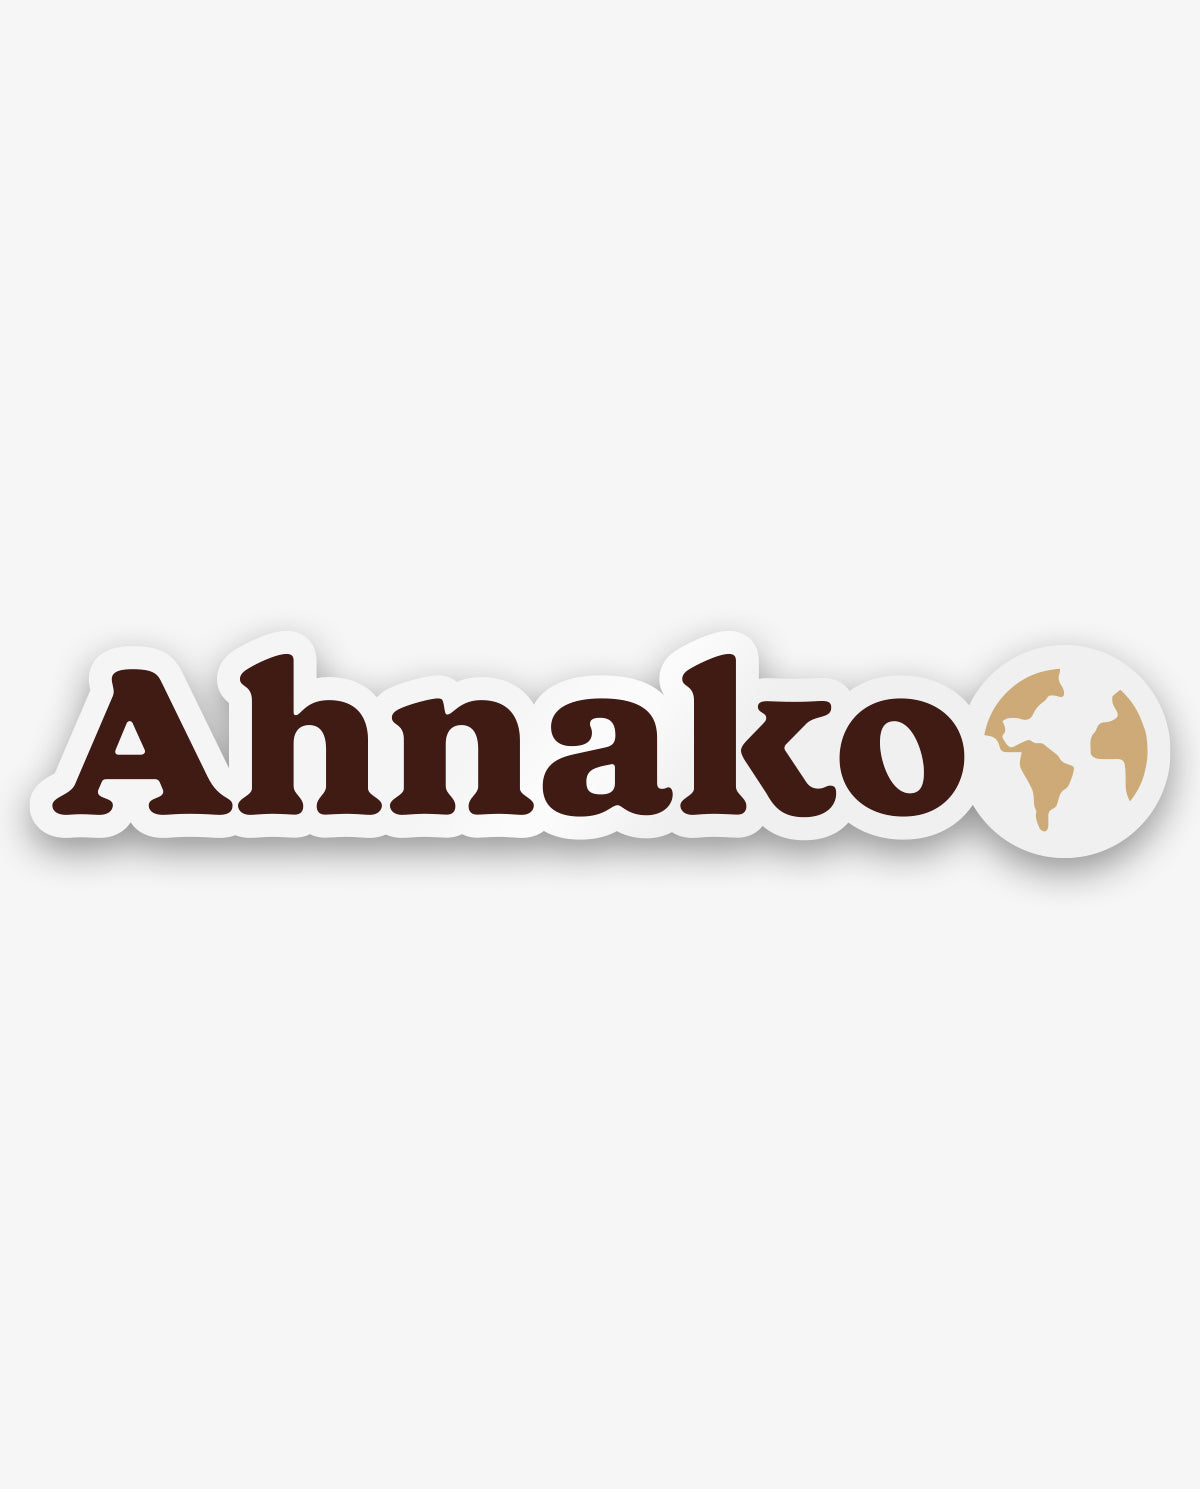 Ahnako planet sticker